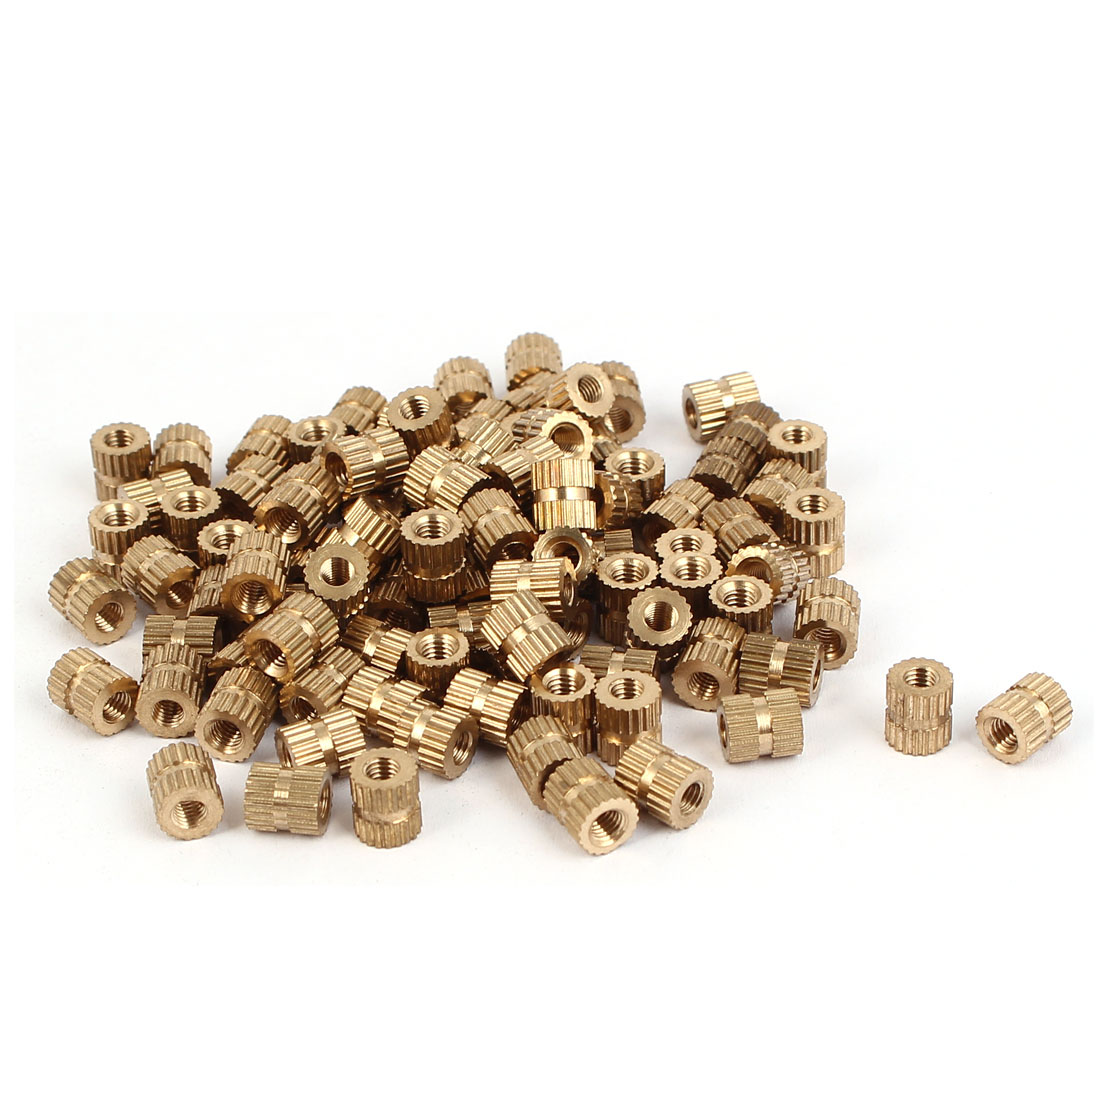 M3 x 6mm Brass Cylinder Knurled Threaded Round Insert Embedded Nuts 100PCS